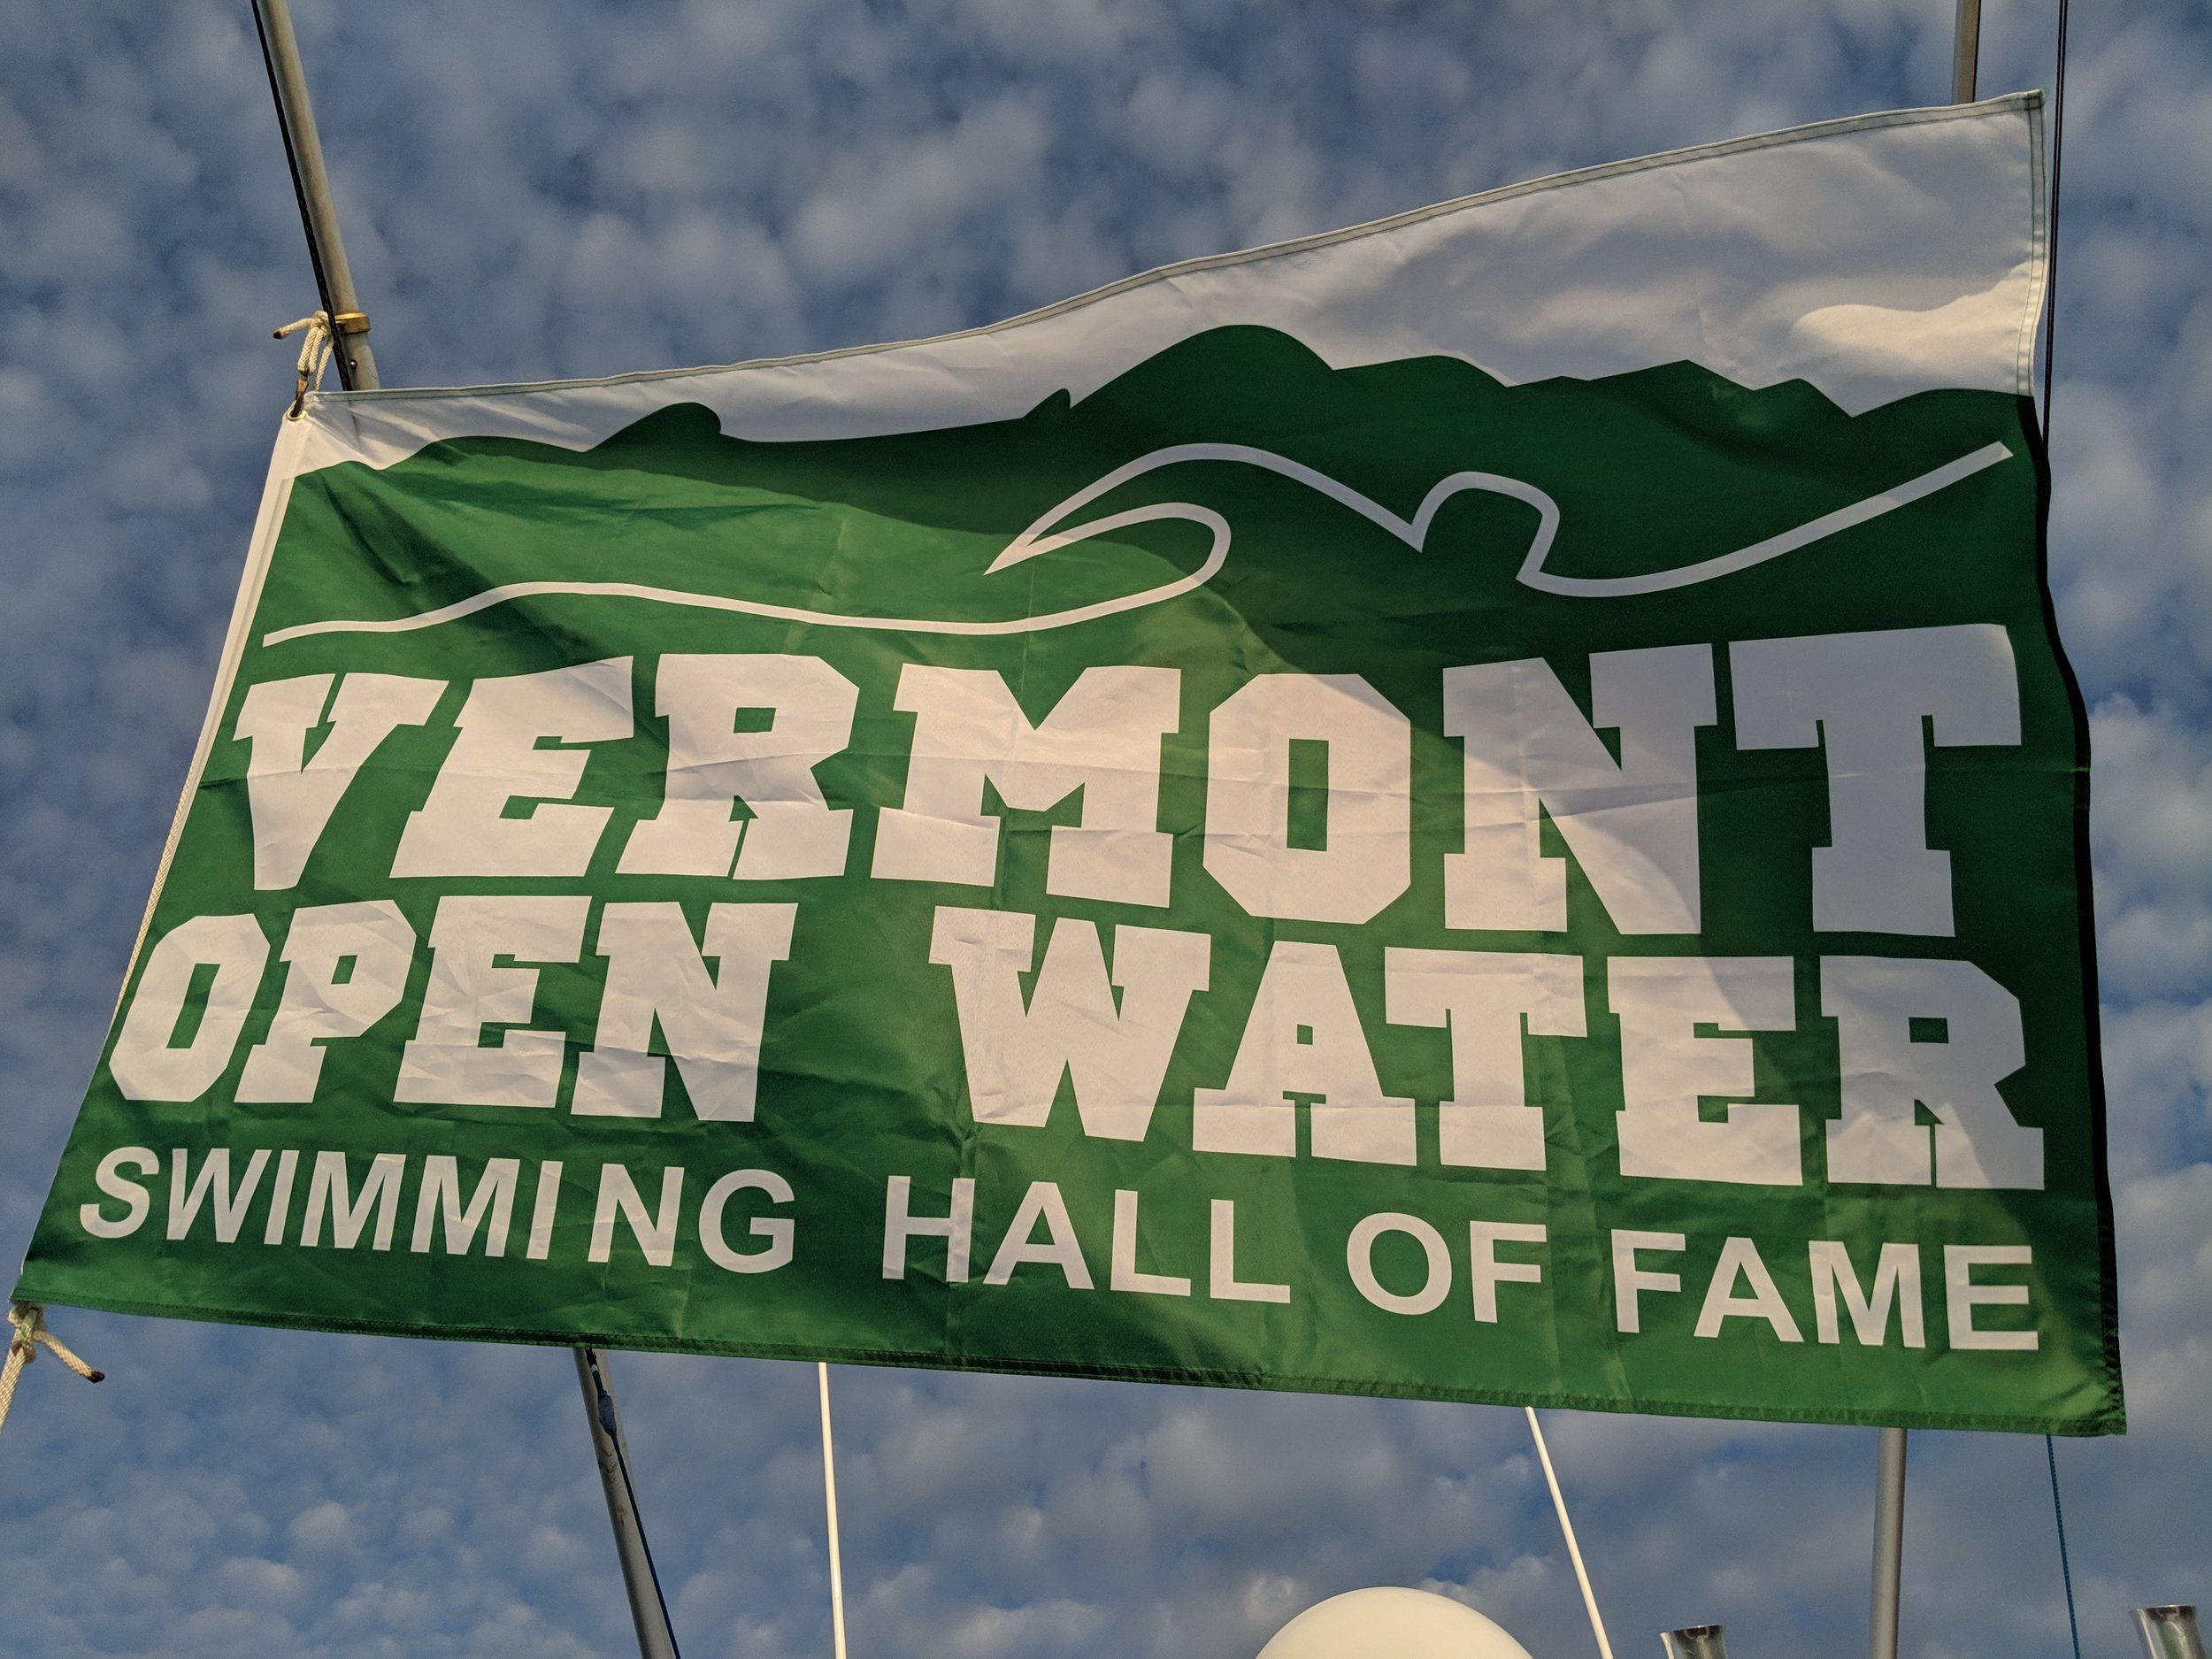 I was inducted to the Vermont Open Water Swimming Hall of Fame in 2018.